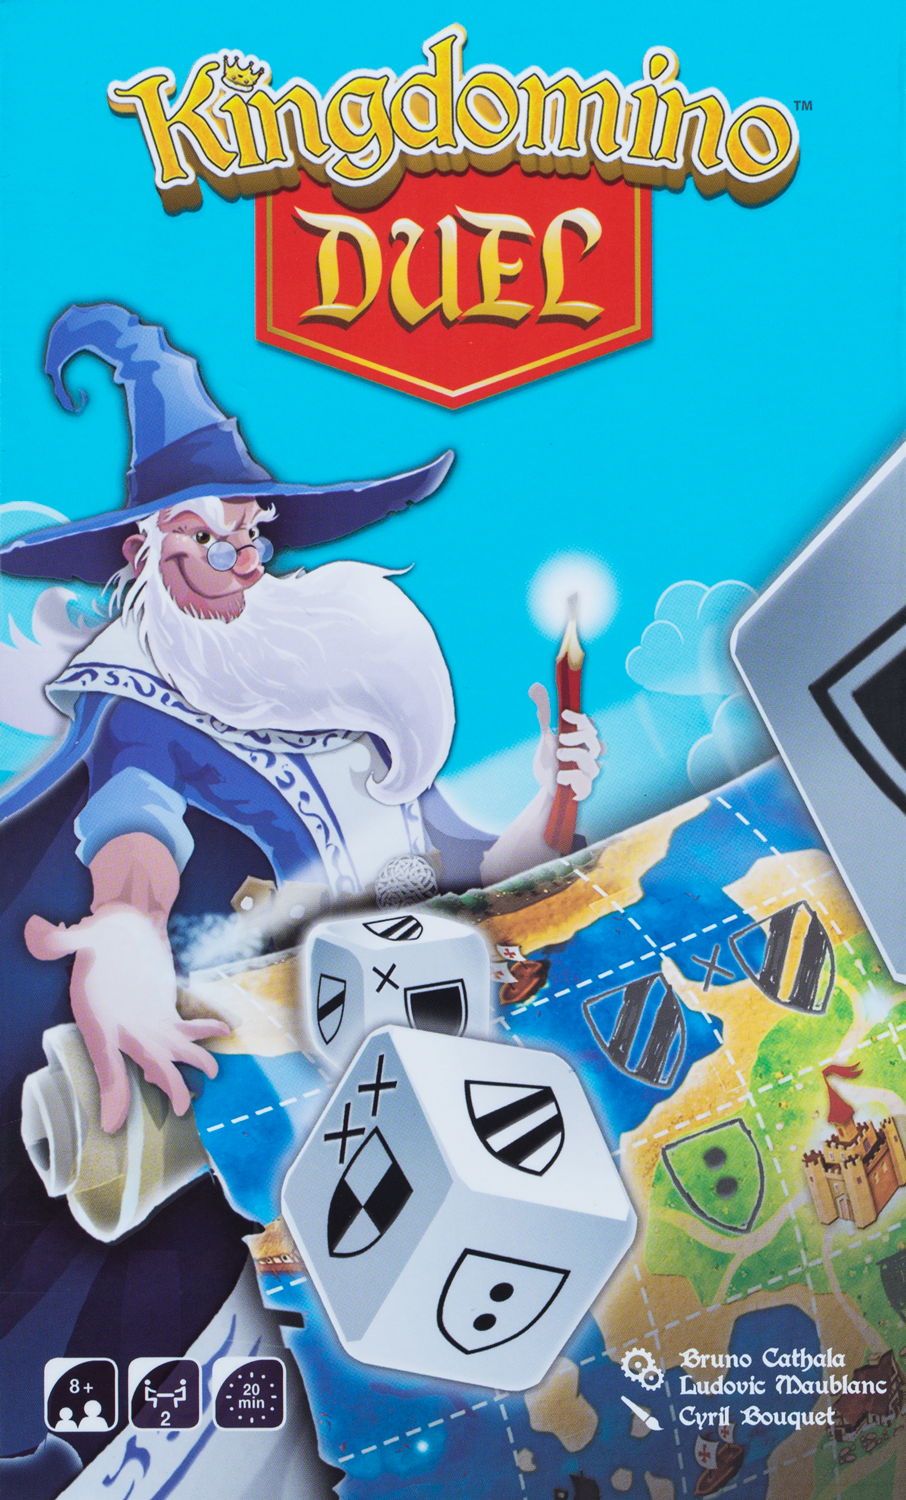 Kingdomino-Duel-buy-from-Out-of-Town-Games